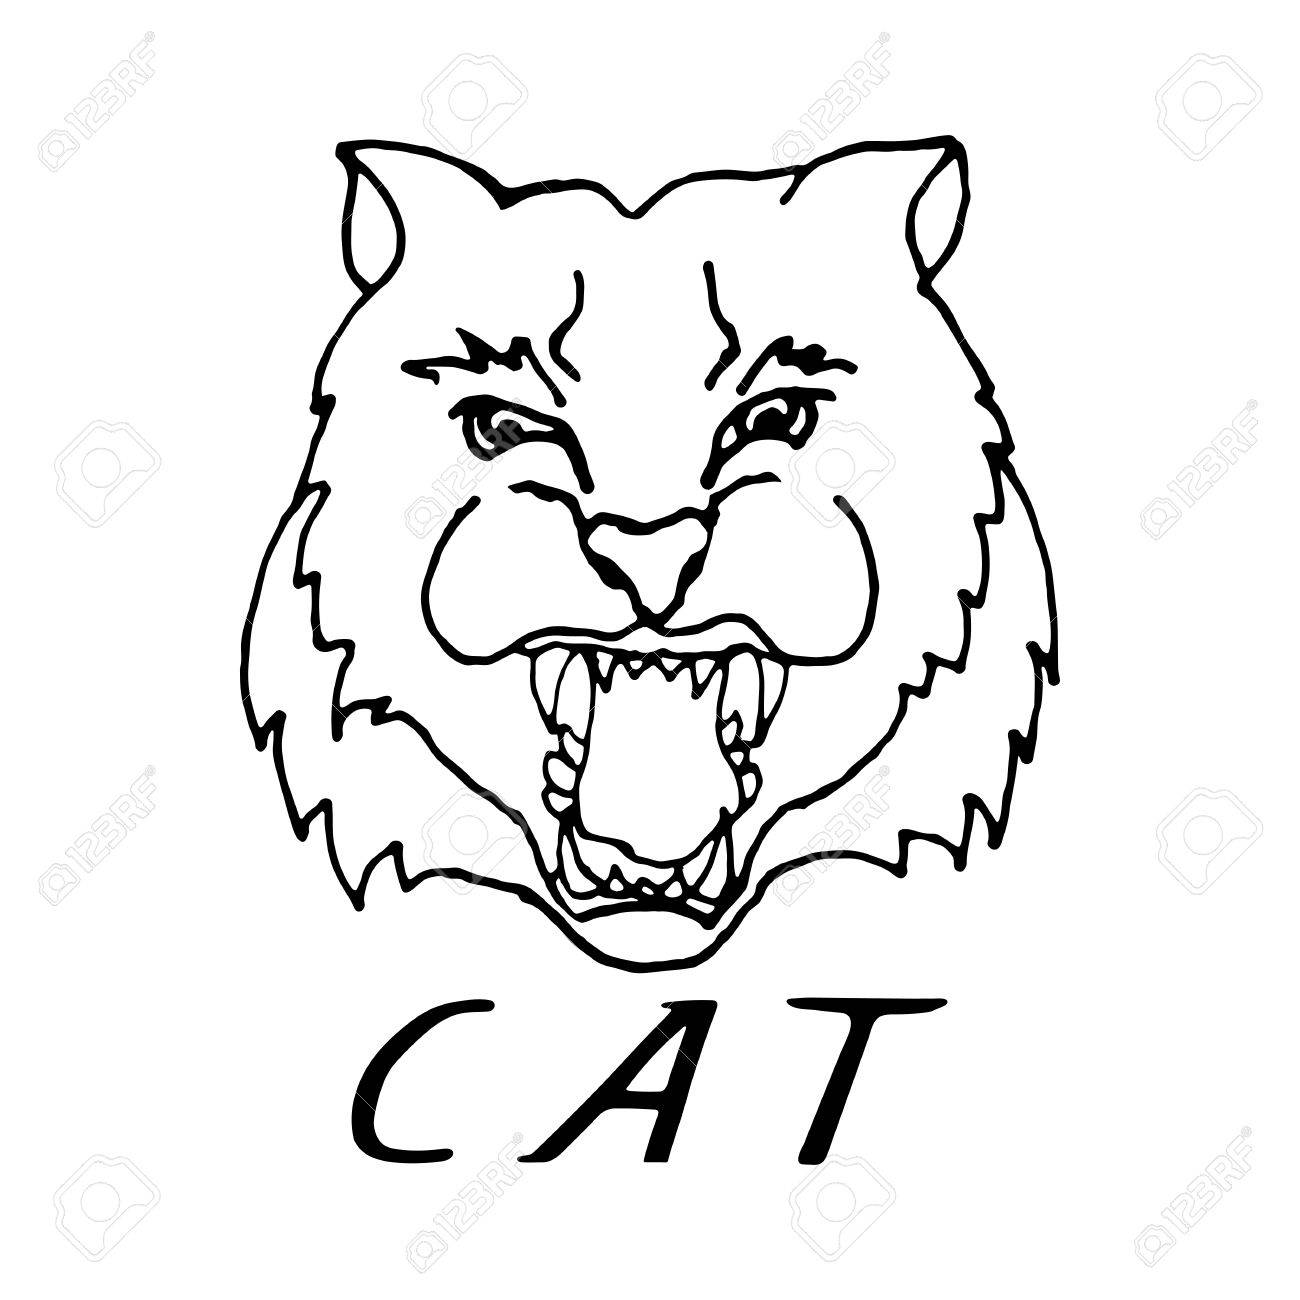 1300x1300 Hand Draw Head Screaming Cat With Big Teeth In Black And White